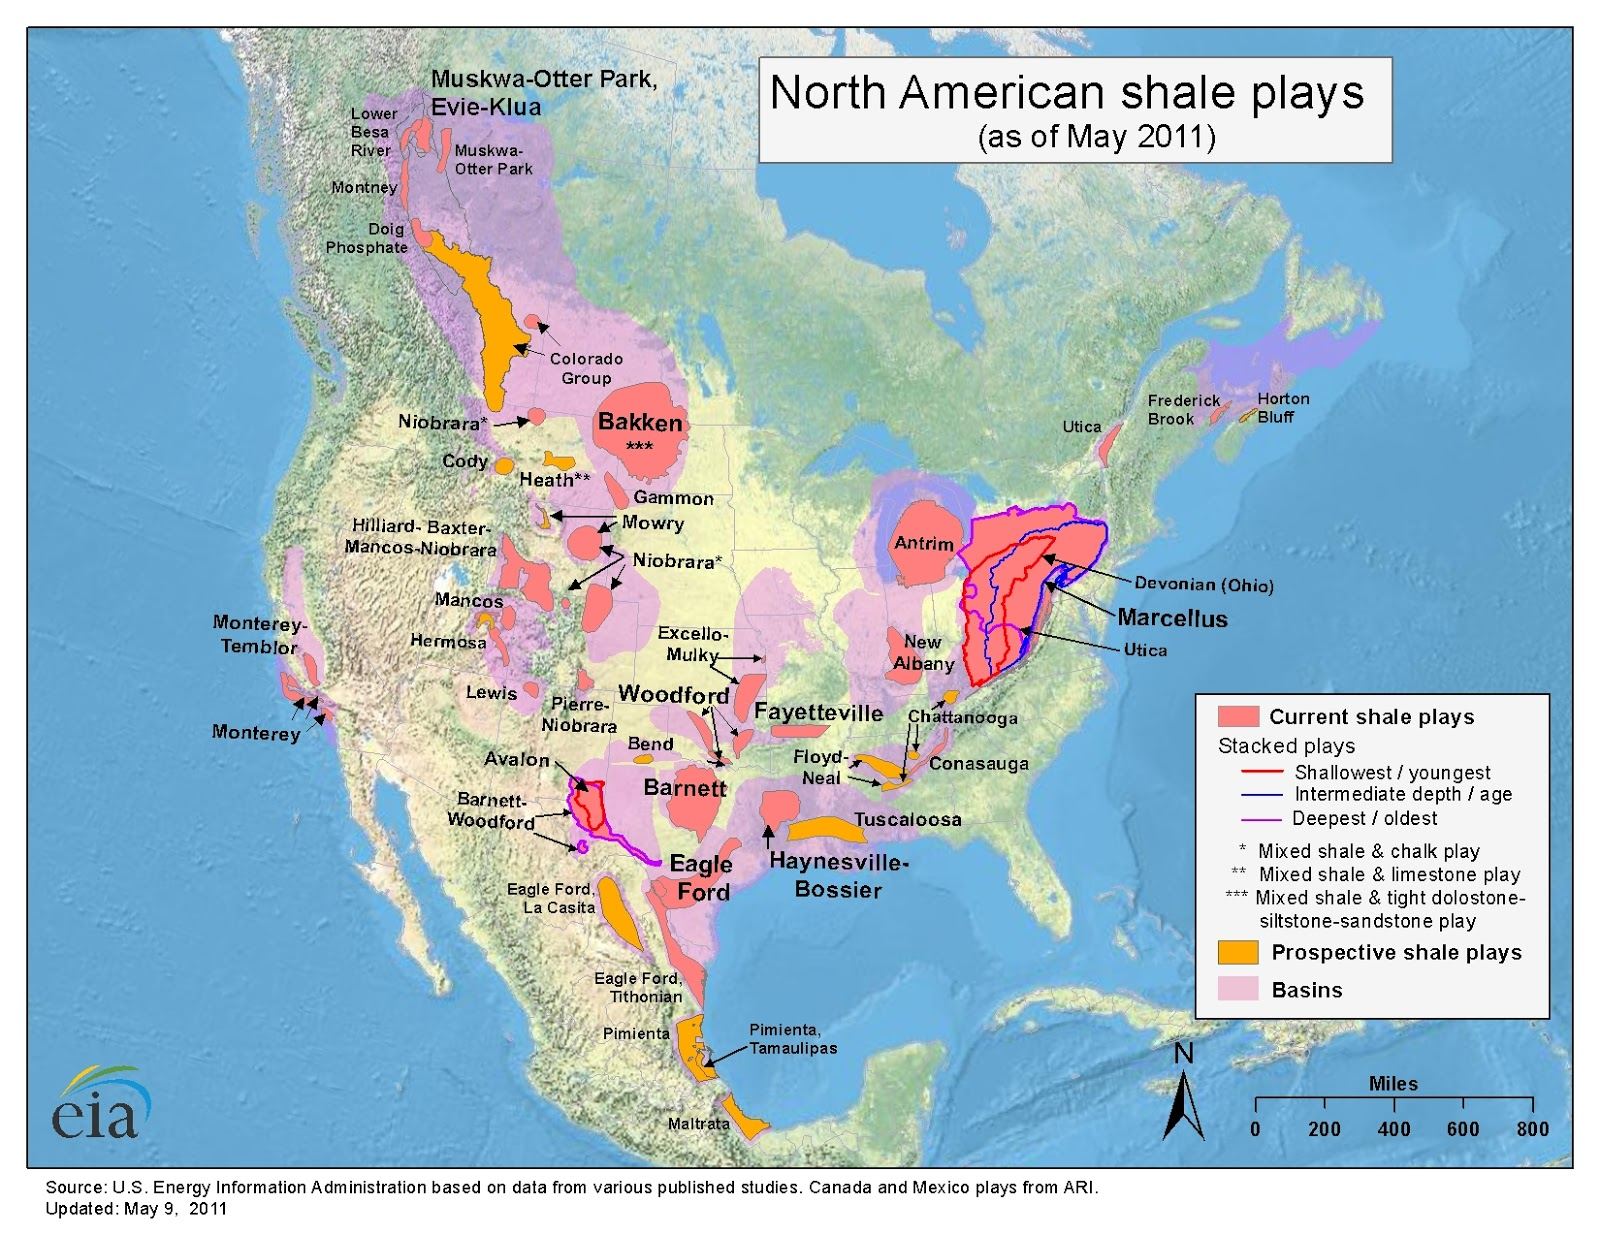 maps exploration resources reserves and production energy information administration n p n d web 15 oct 2015